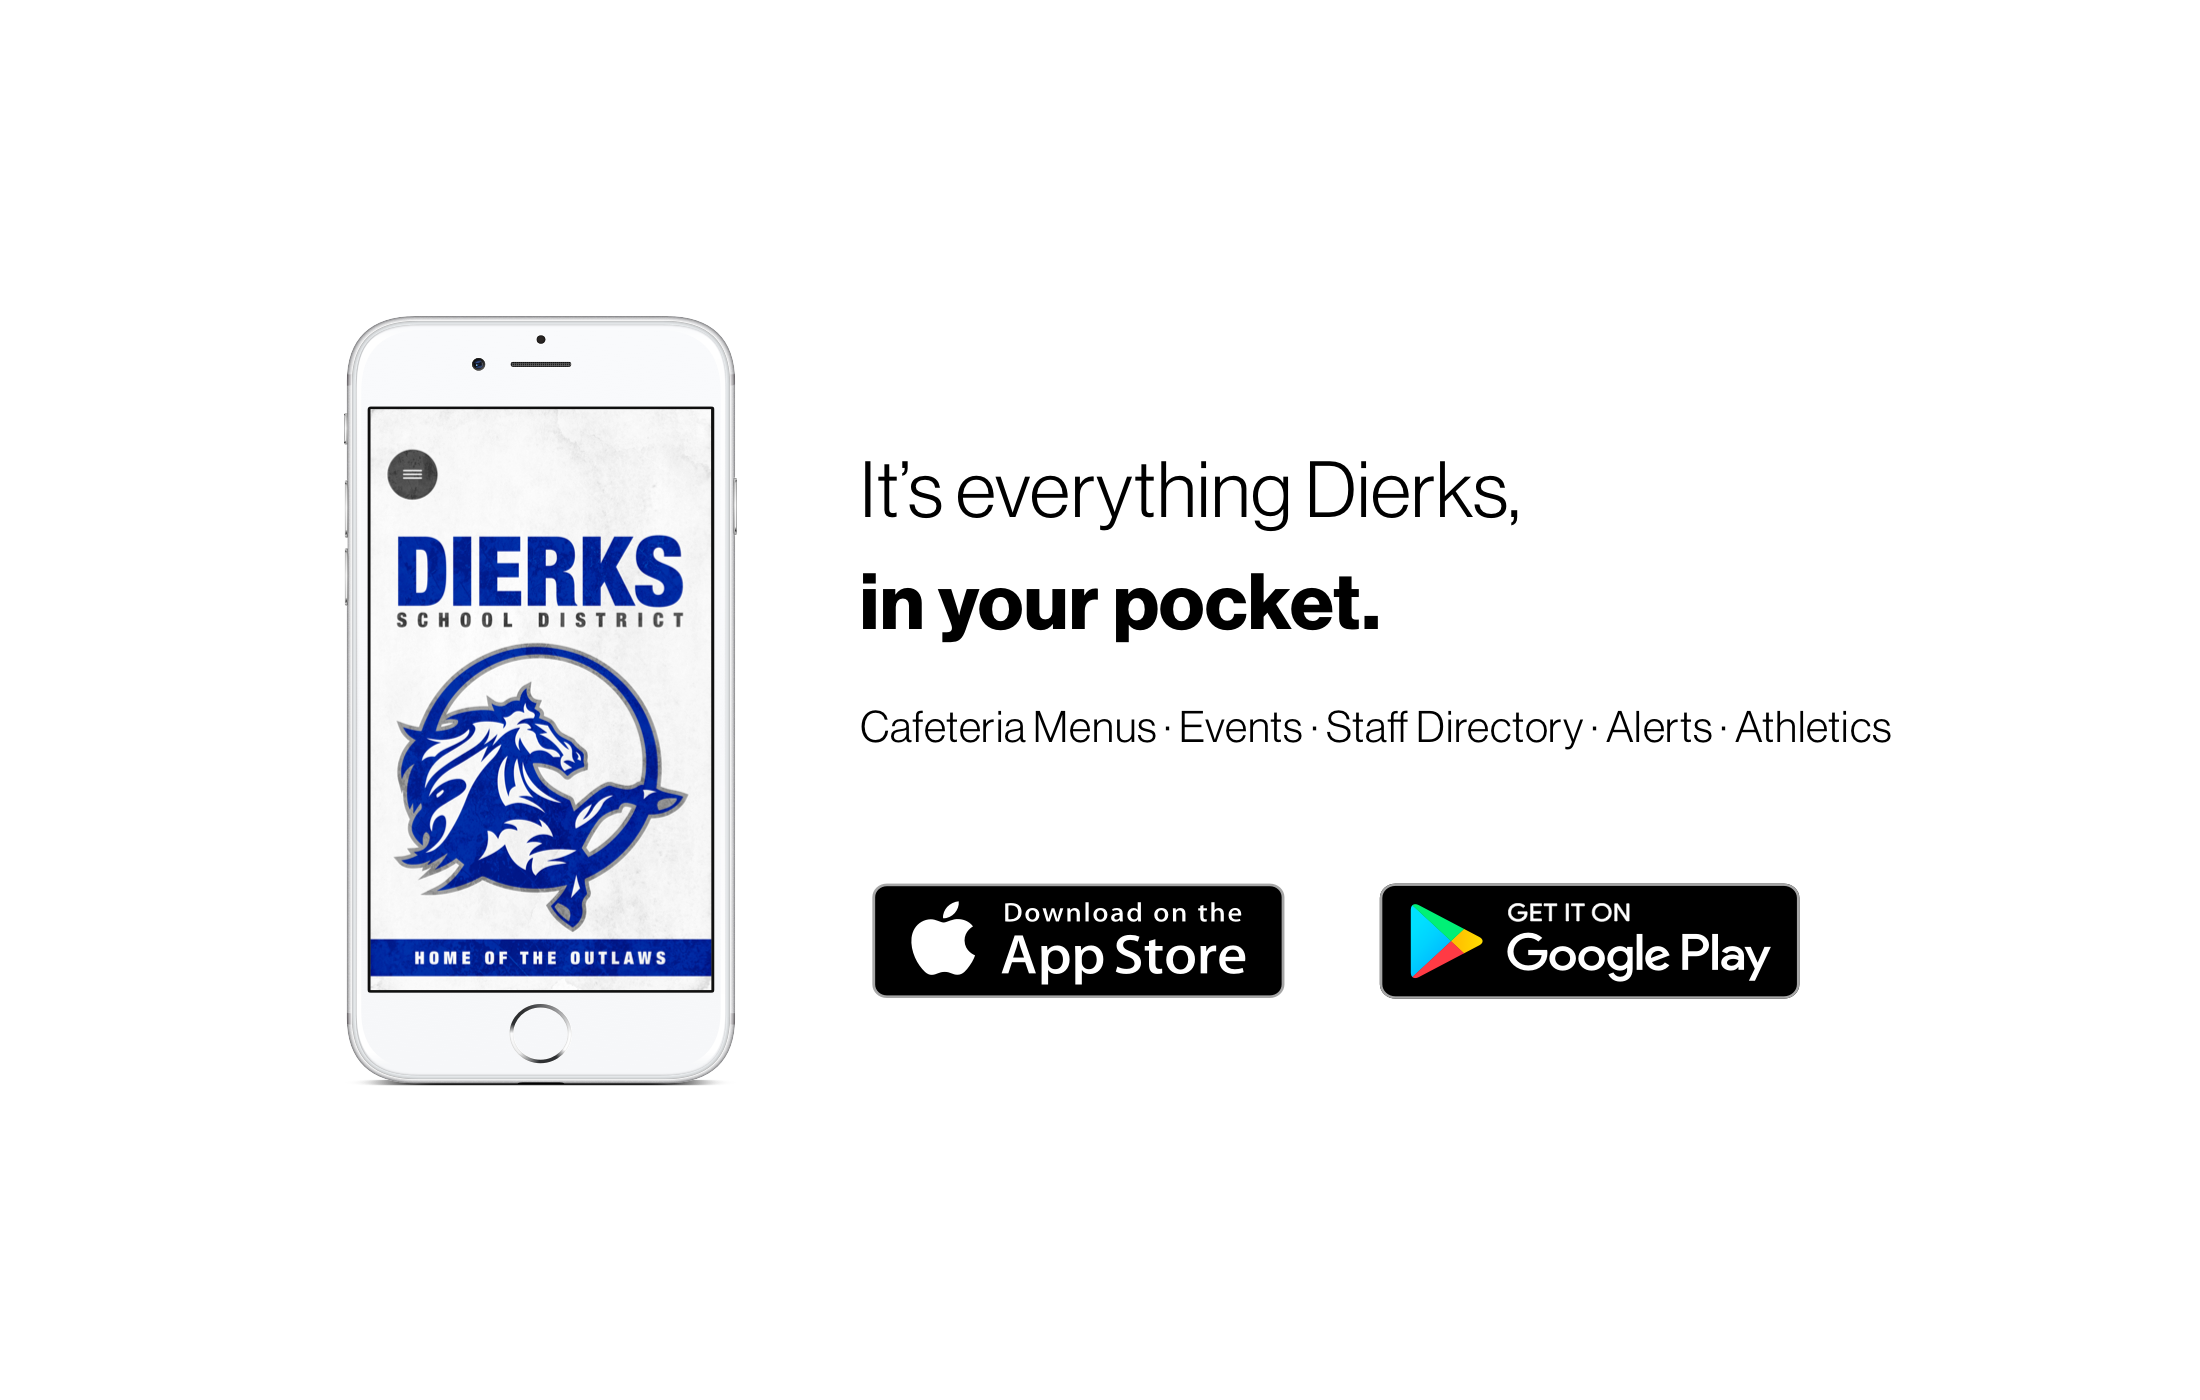 It's everything Dierk, in your pocket. Go and download our new app from the App store and Google Play store.